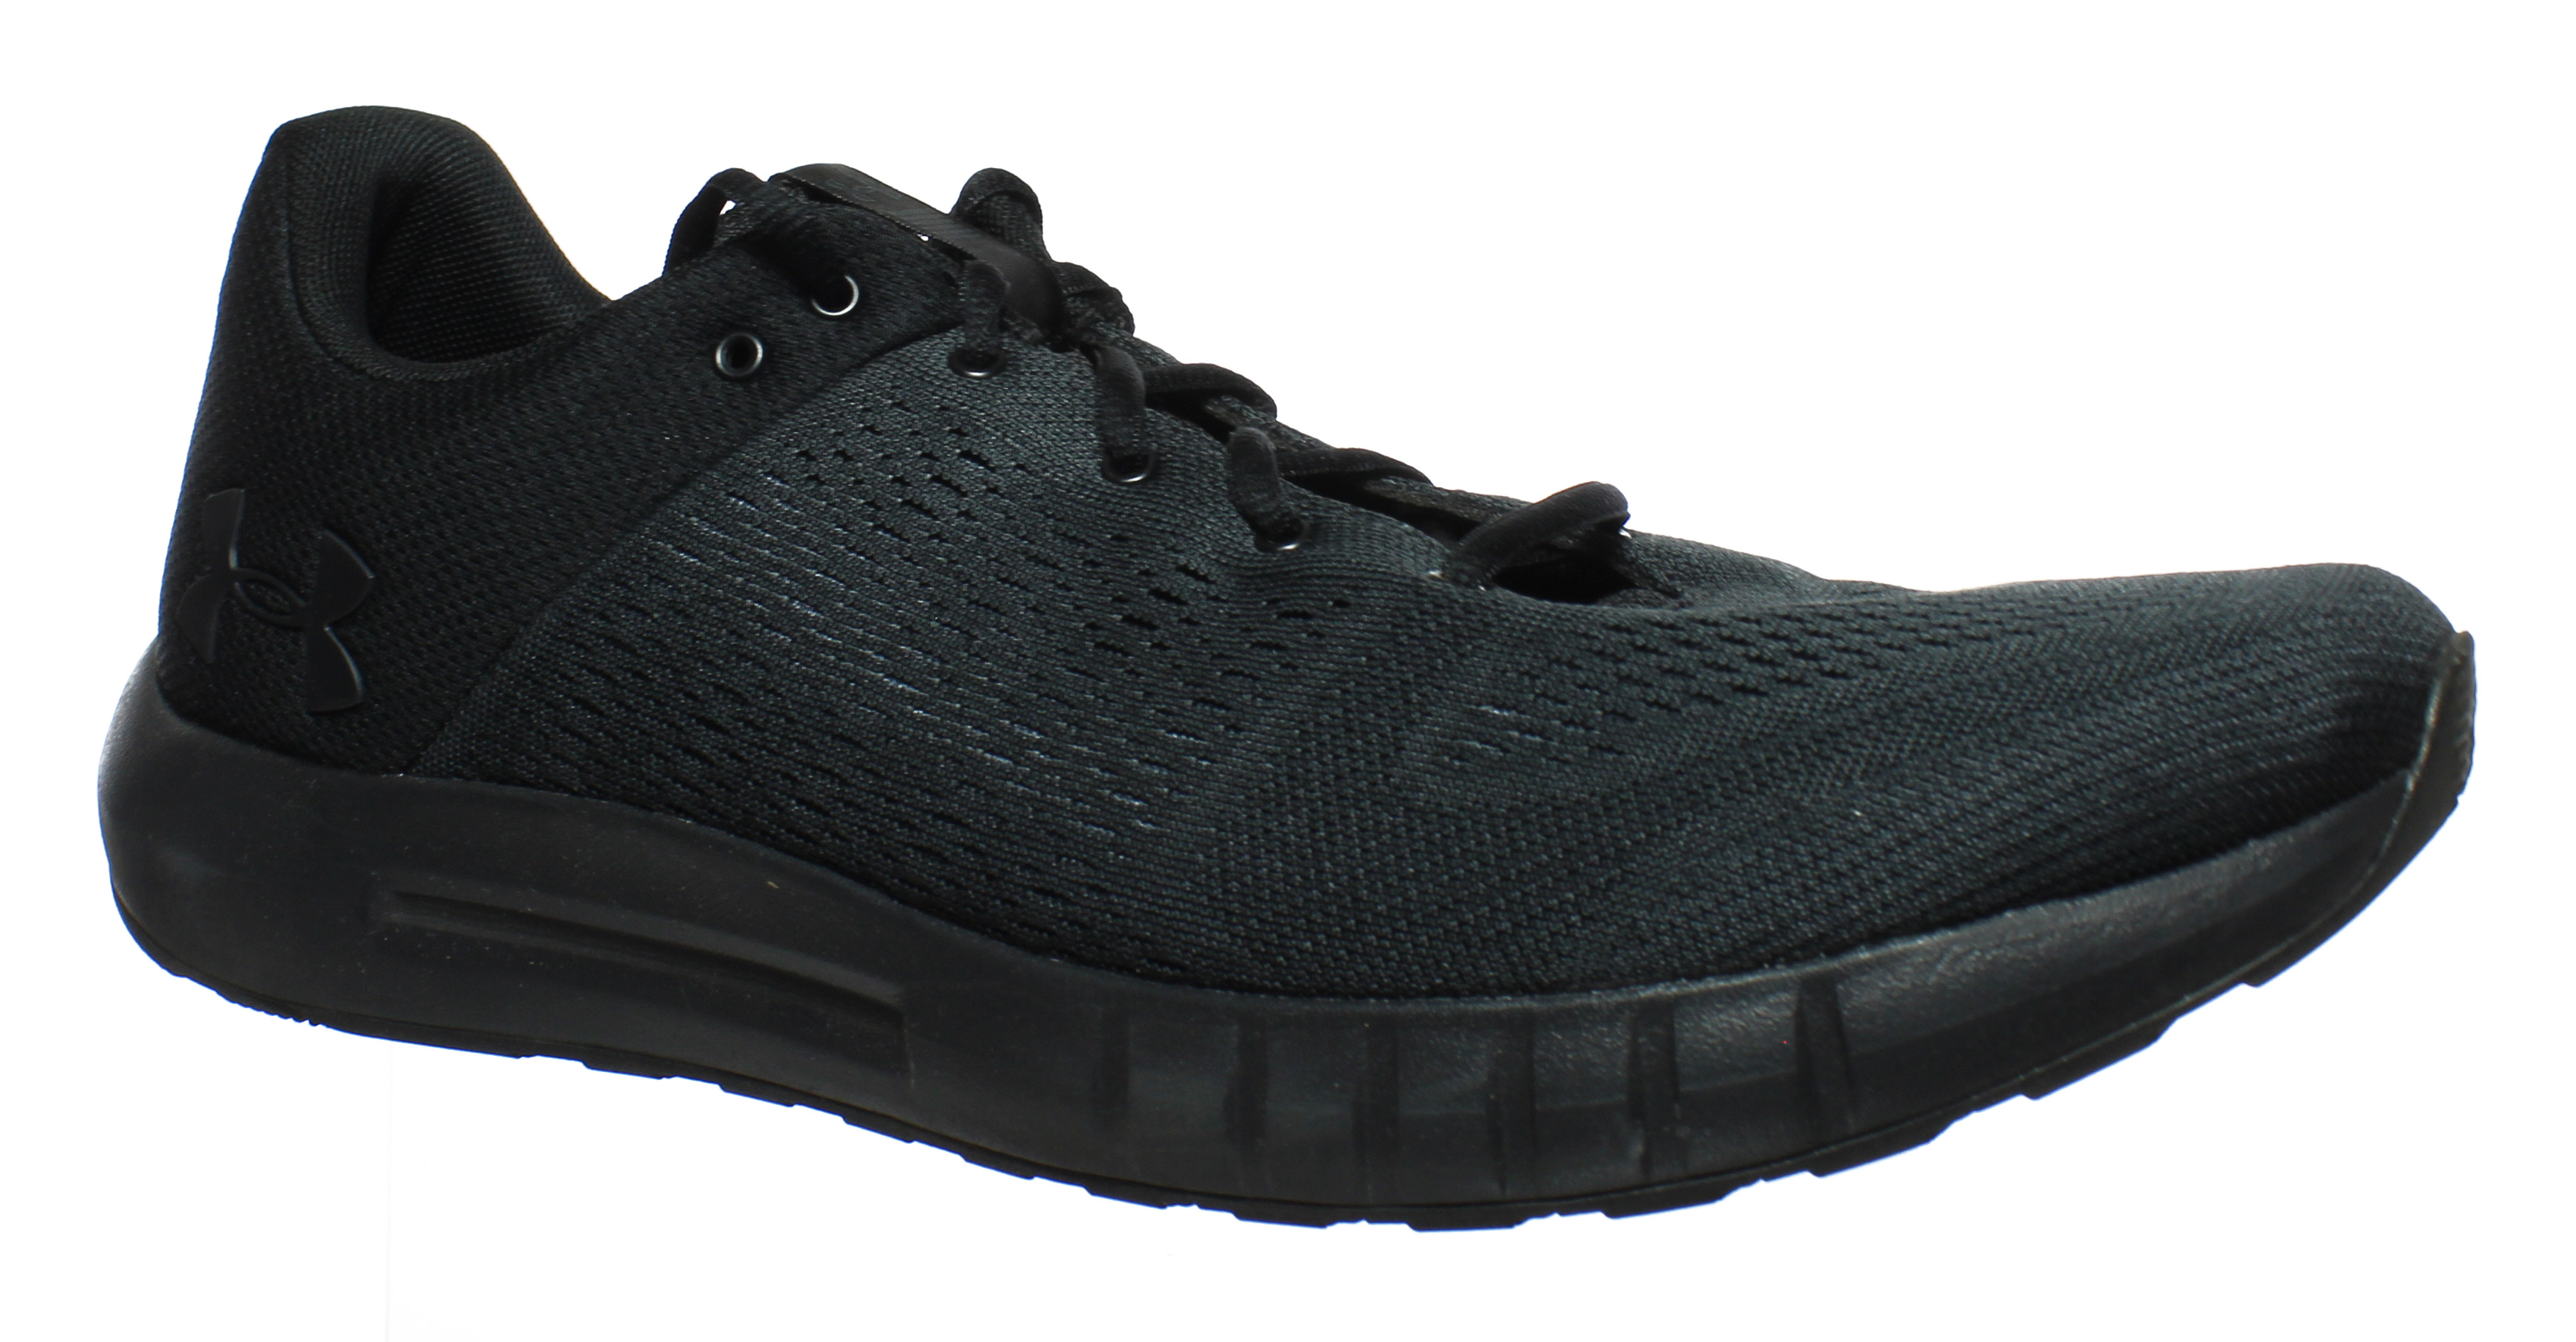 db64f5df4 Under Armour Armour Armour Mens Ua Micro G Pursuit Black Running Shoes Size  13 (14377) 6174dd